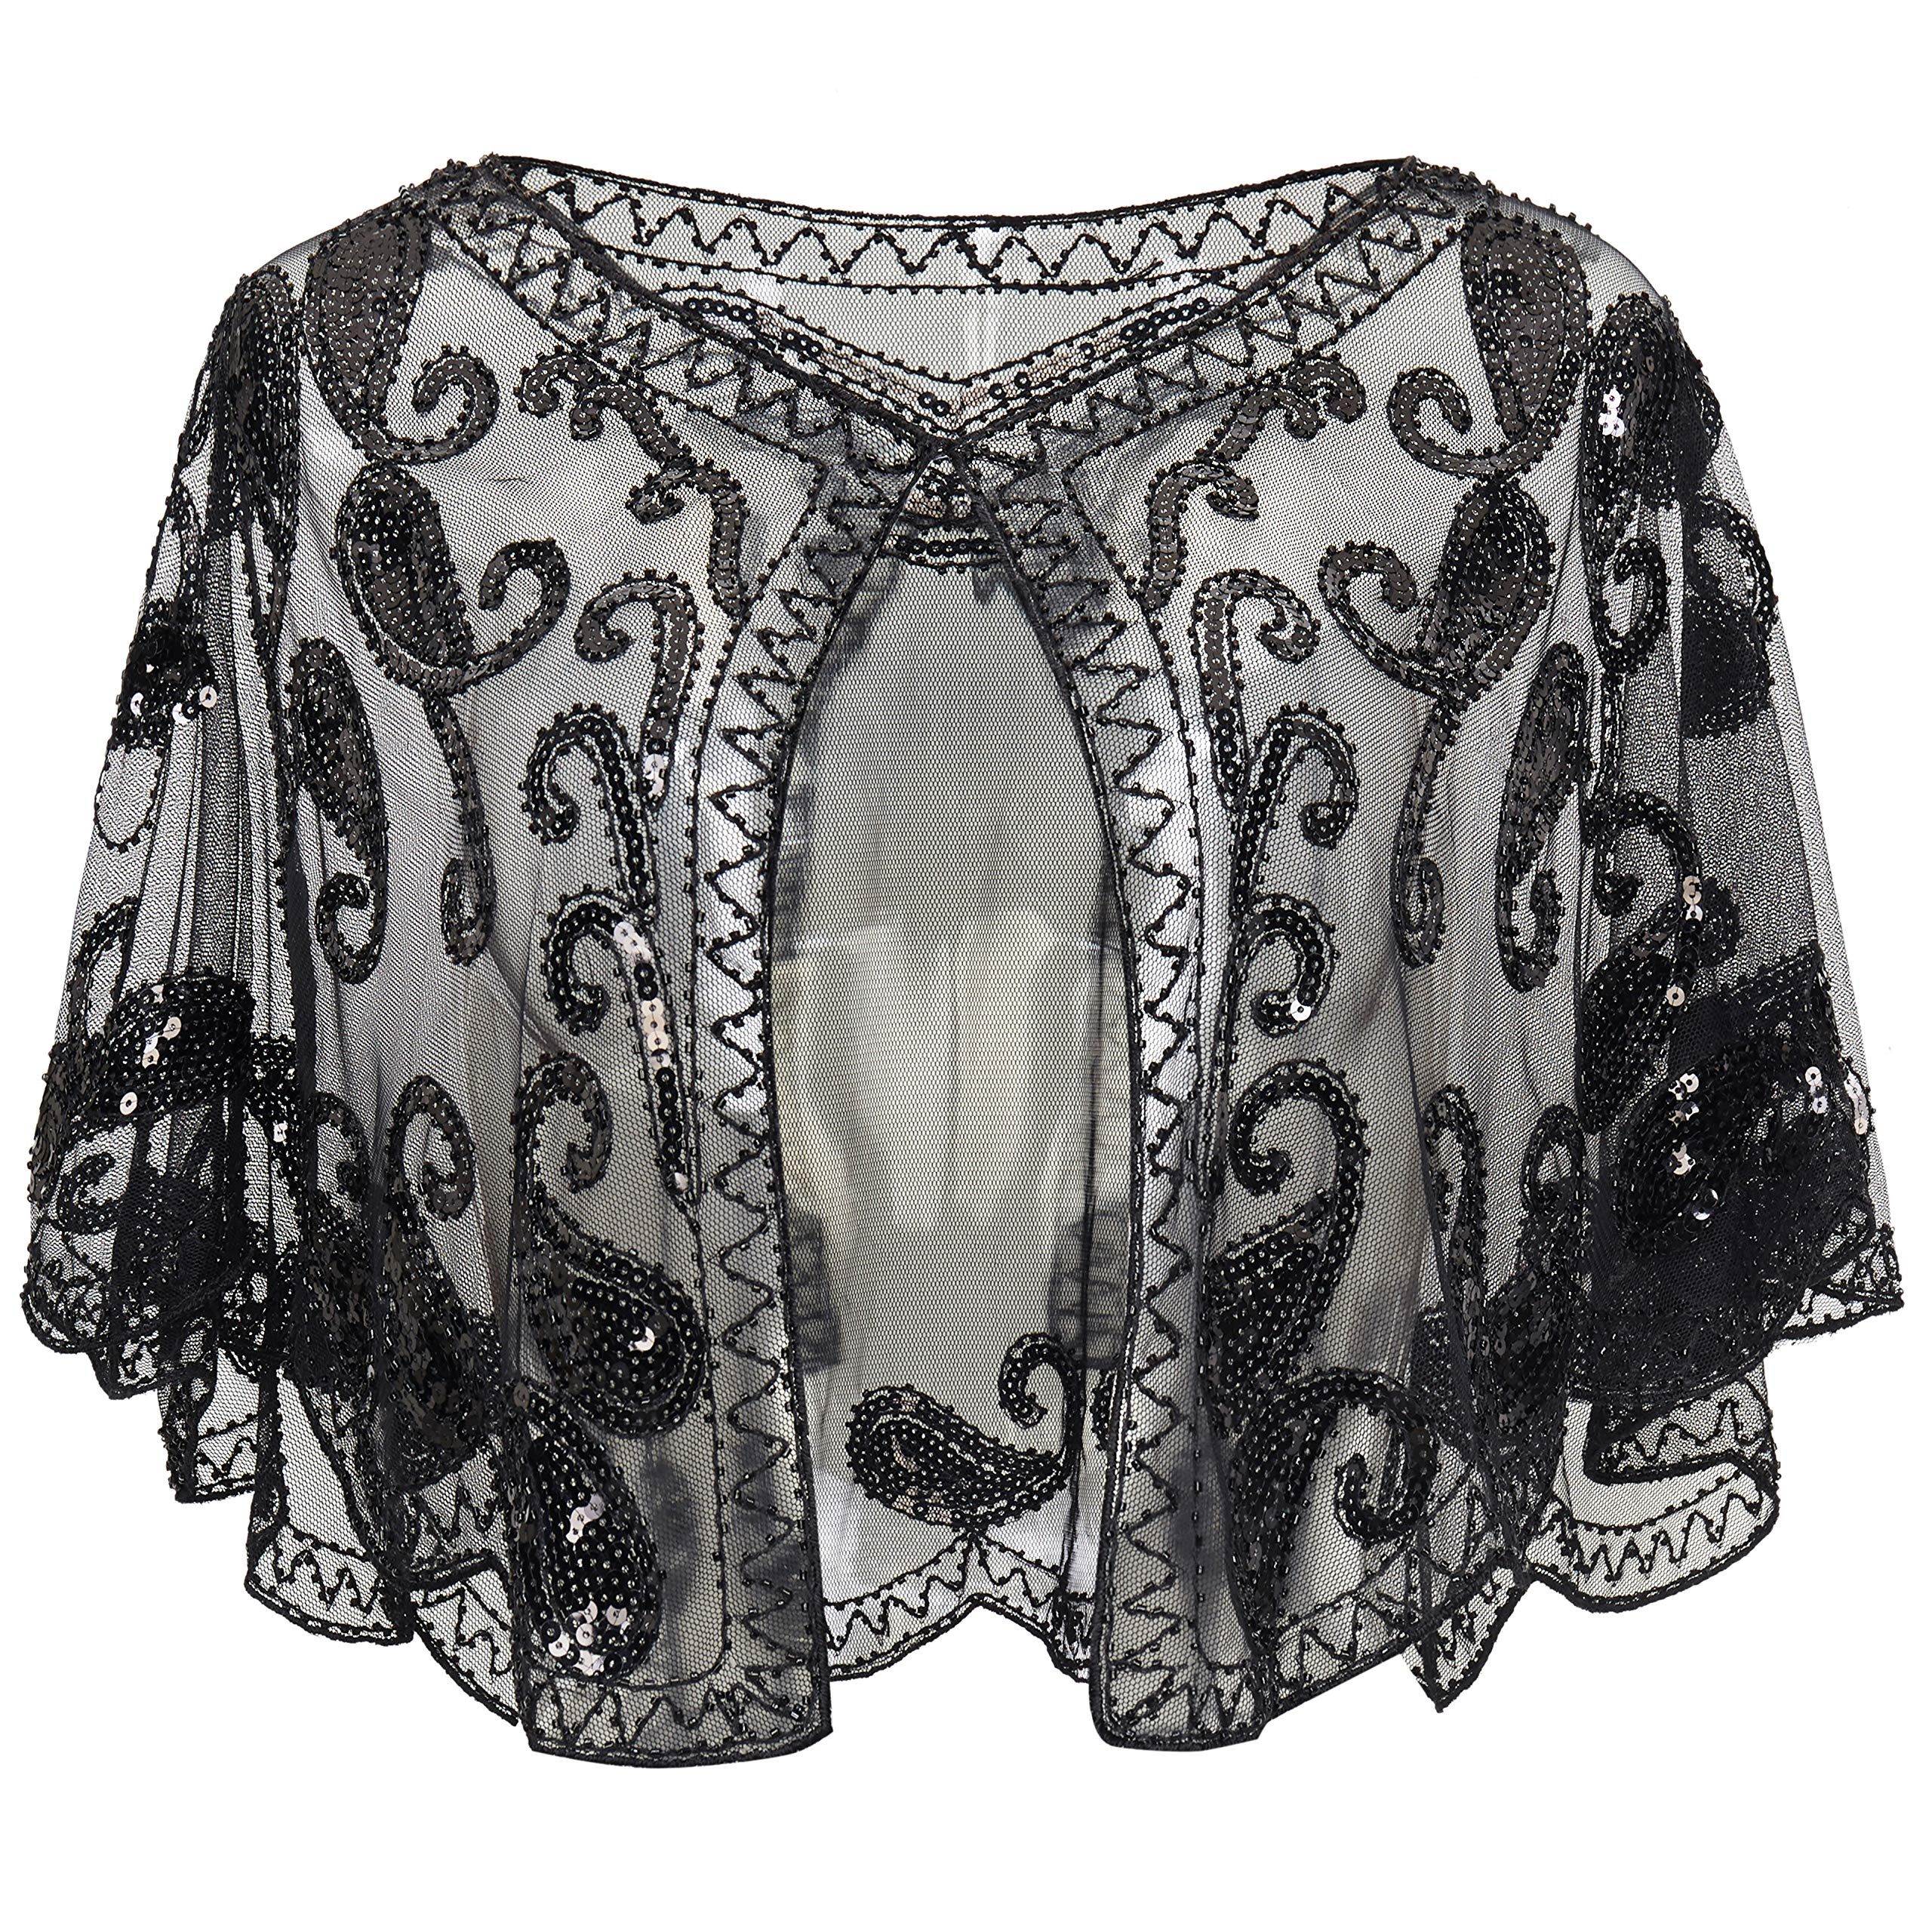 BABEYOND 1920s Shawl Wraps Beaded Evening Cape Bridal Shawl Flapper Cover Up (Black) by BABEYOND